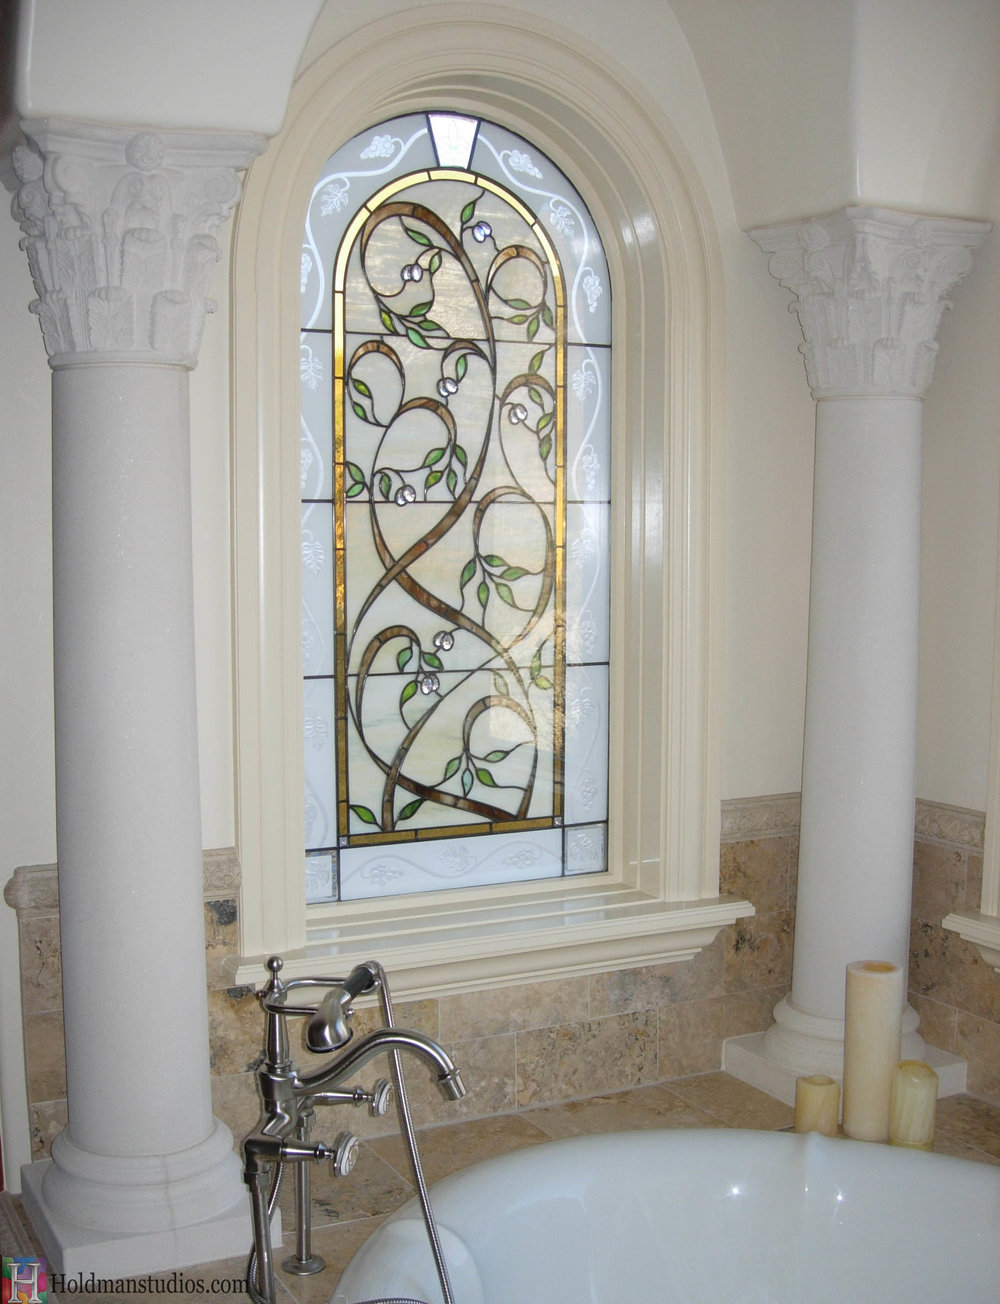 Stained glass bathroom window of vines, leaves, blossoms, and grapes. Created by artists under the direction of Tom Holdman at Holdman Studios.